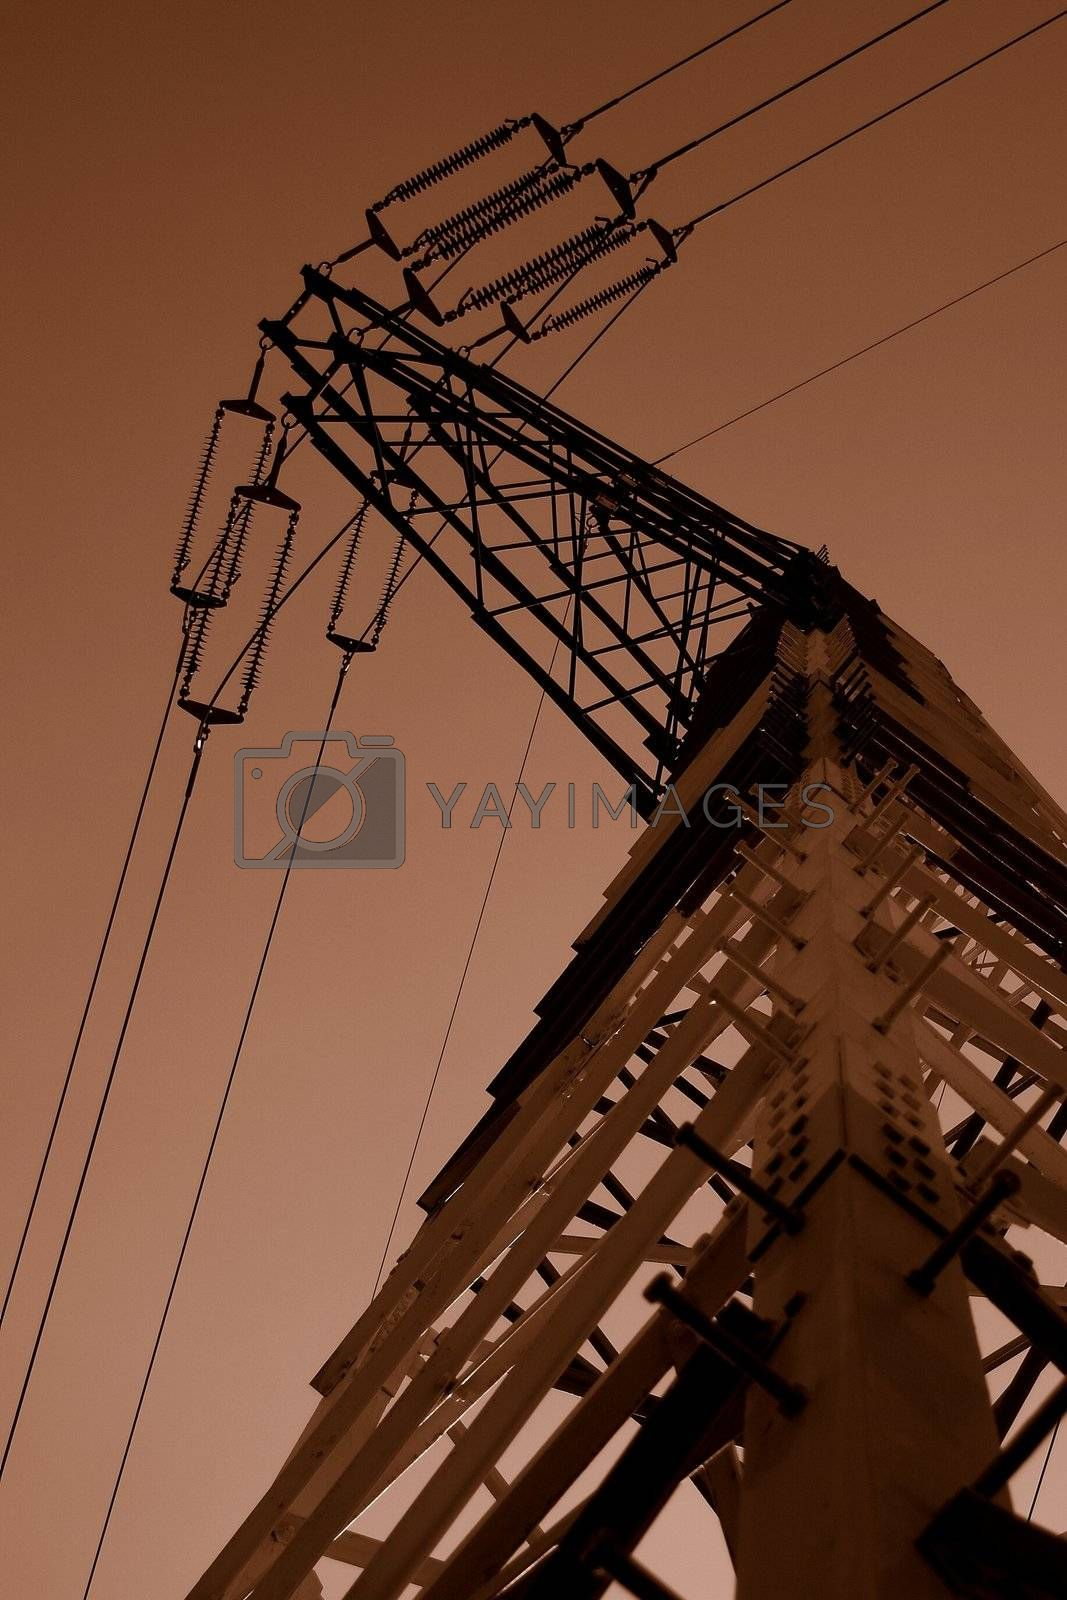 Royalty free image of Electricity pylon by ebrom